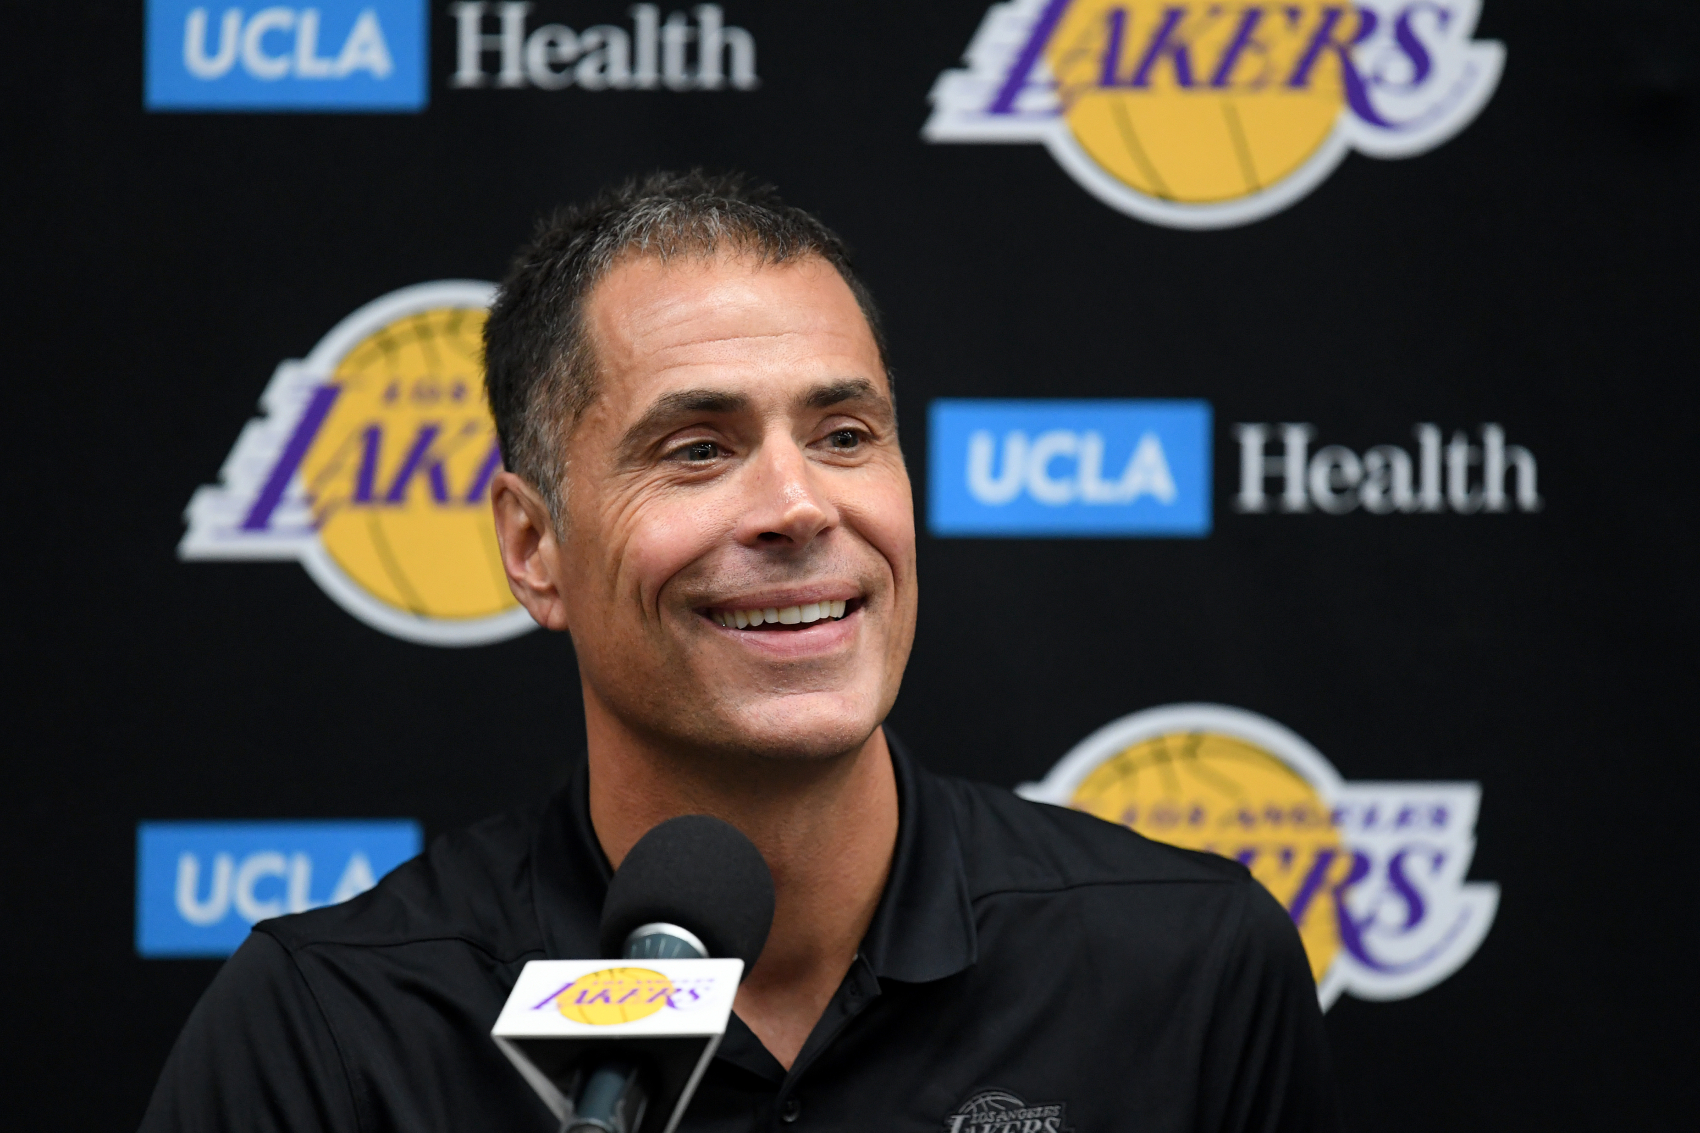 Lakers general manager Rob Pelinka has built a very strong team. He has since used 'The Queen's Gambit' to show how they became the kings.